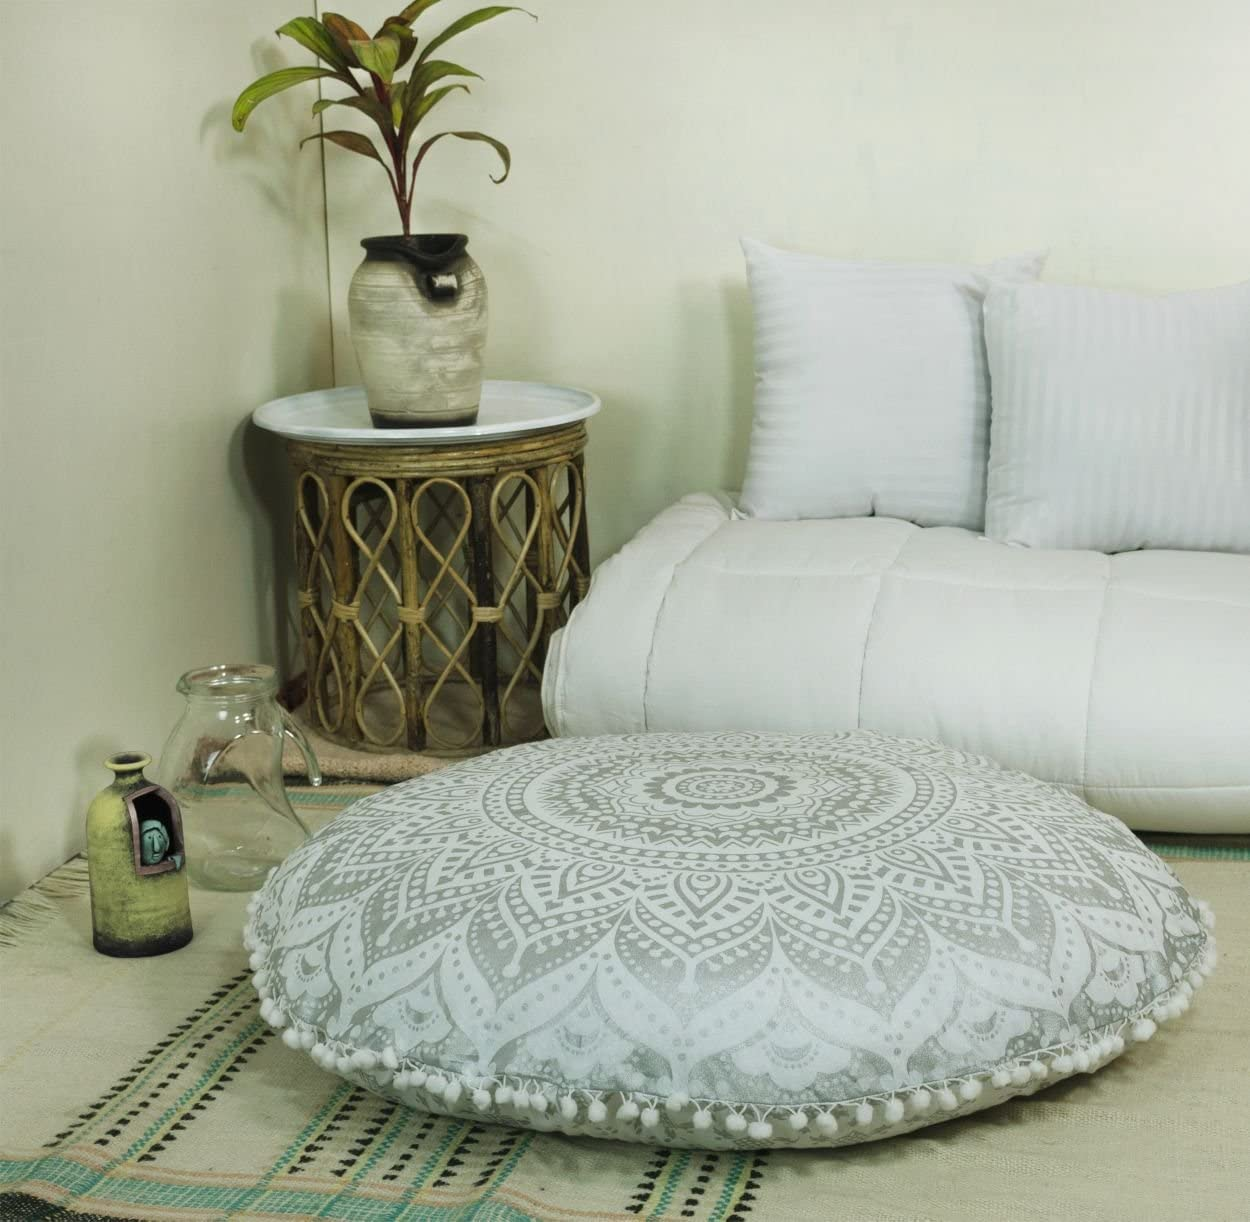 "Popular Handicrafts Mandala Round Hippie Floor Pillow Cover (Silver, 32"" Cushion Cover)"